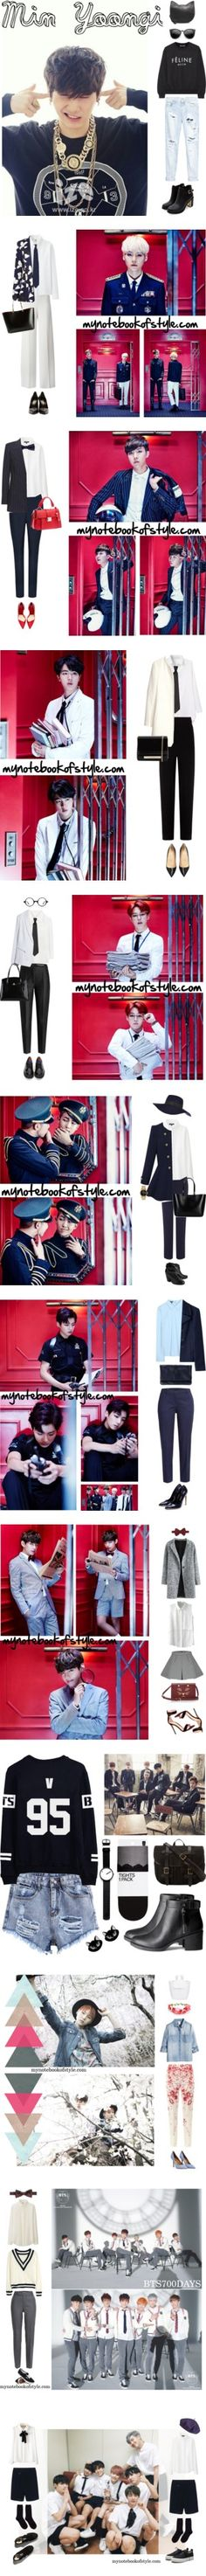 """BTS sets"" by mynotebookofstyle ❤ liked on Polyvore"